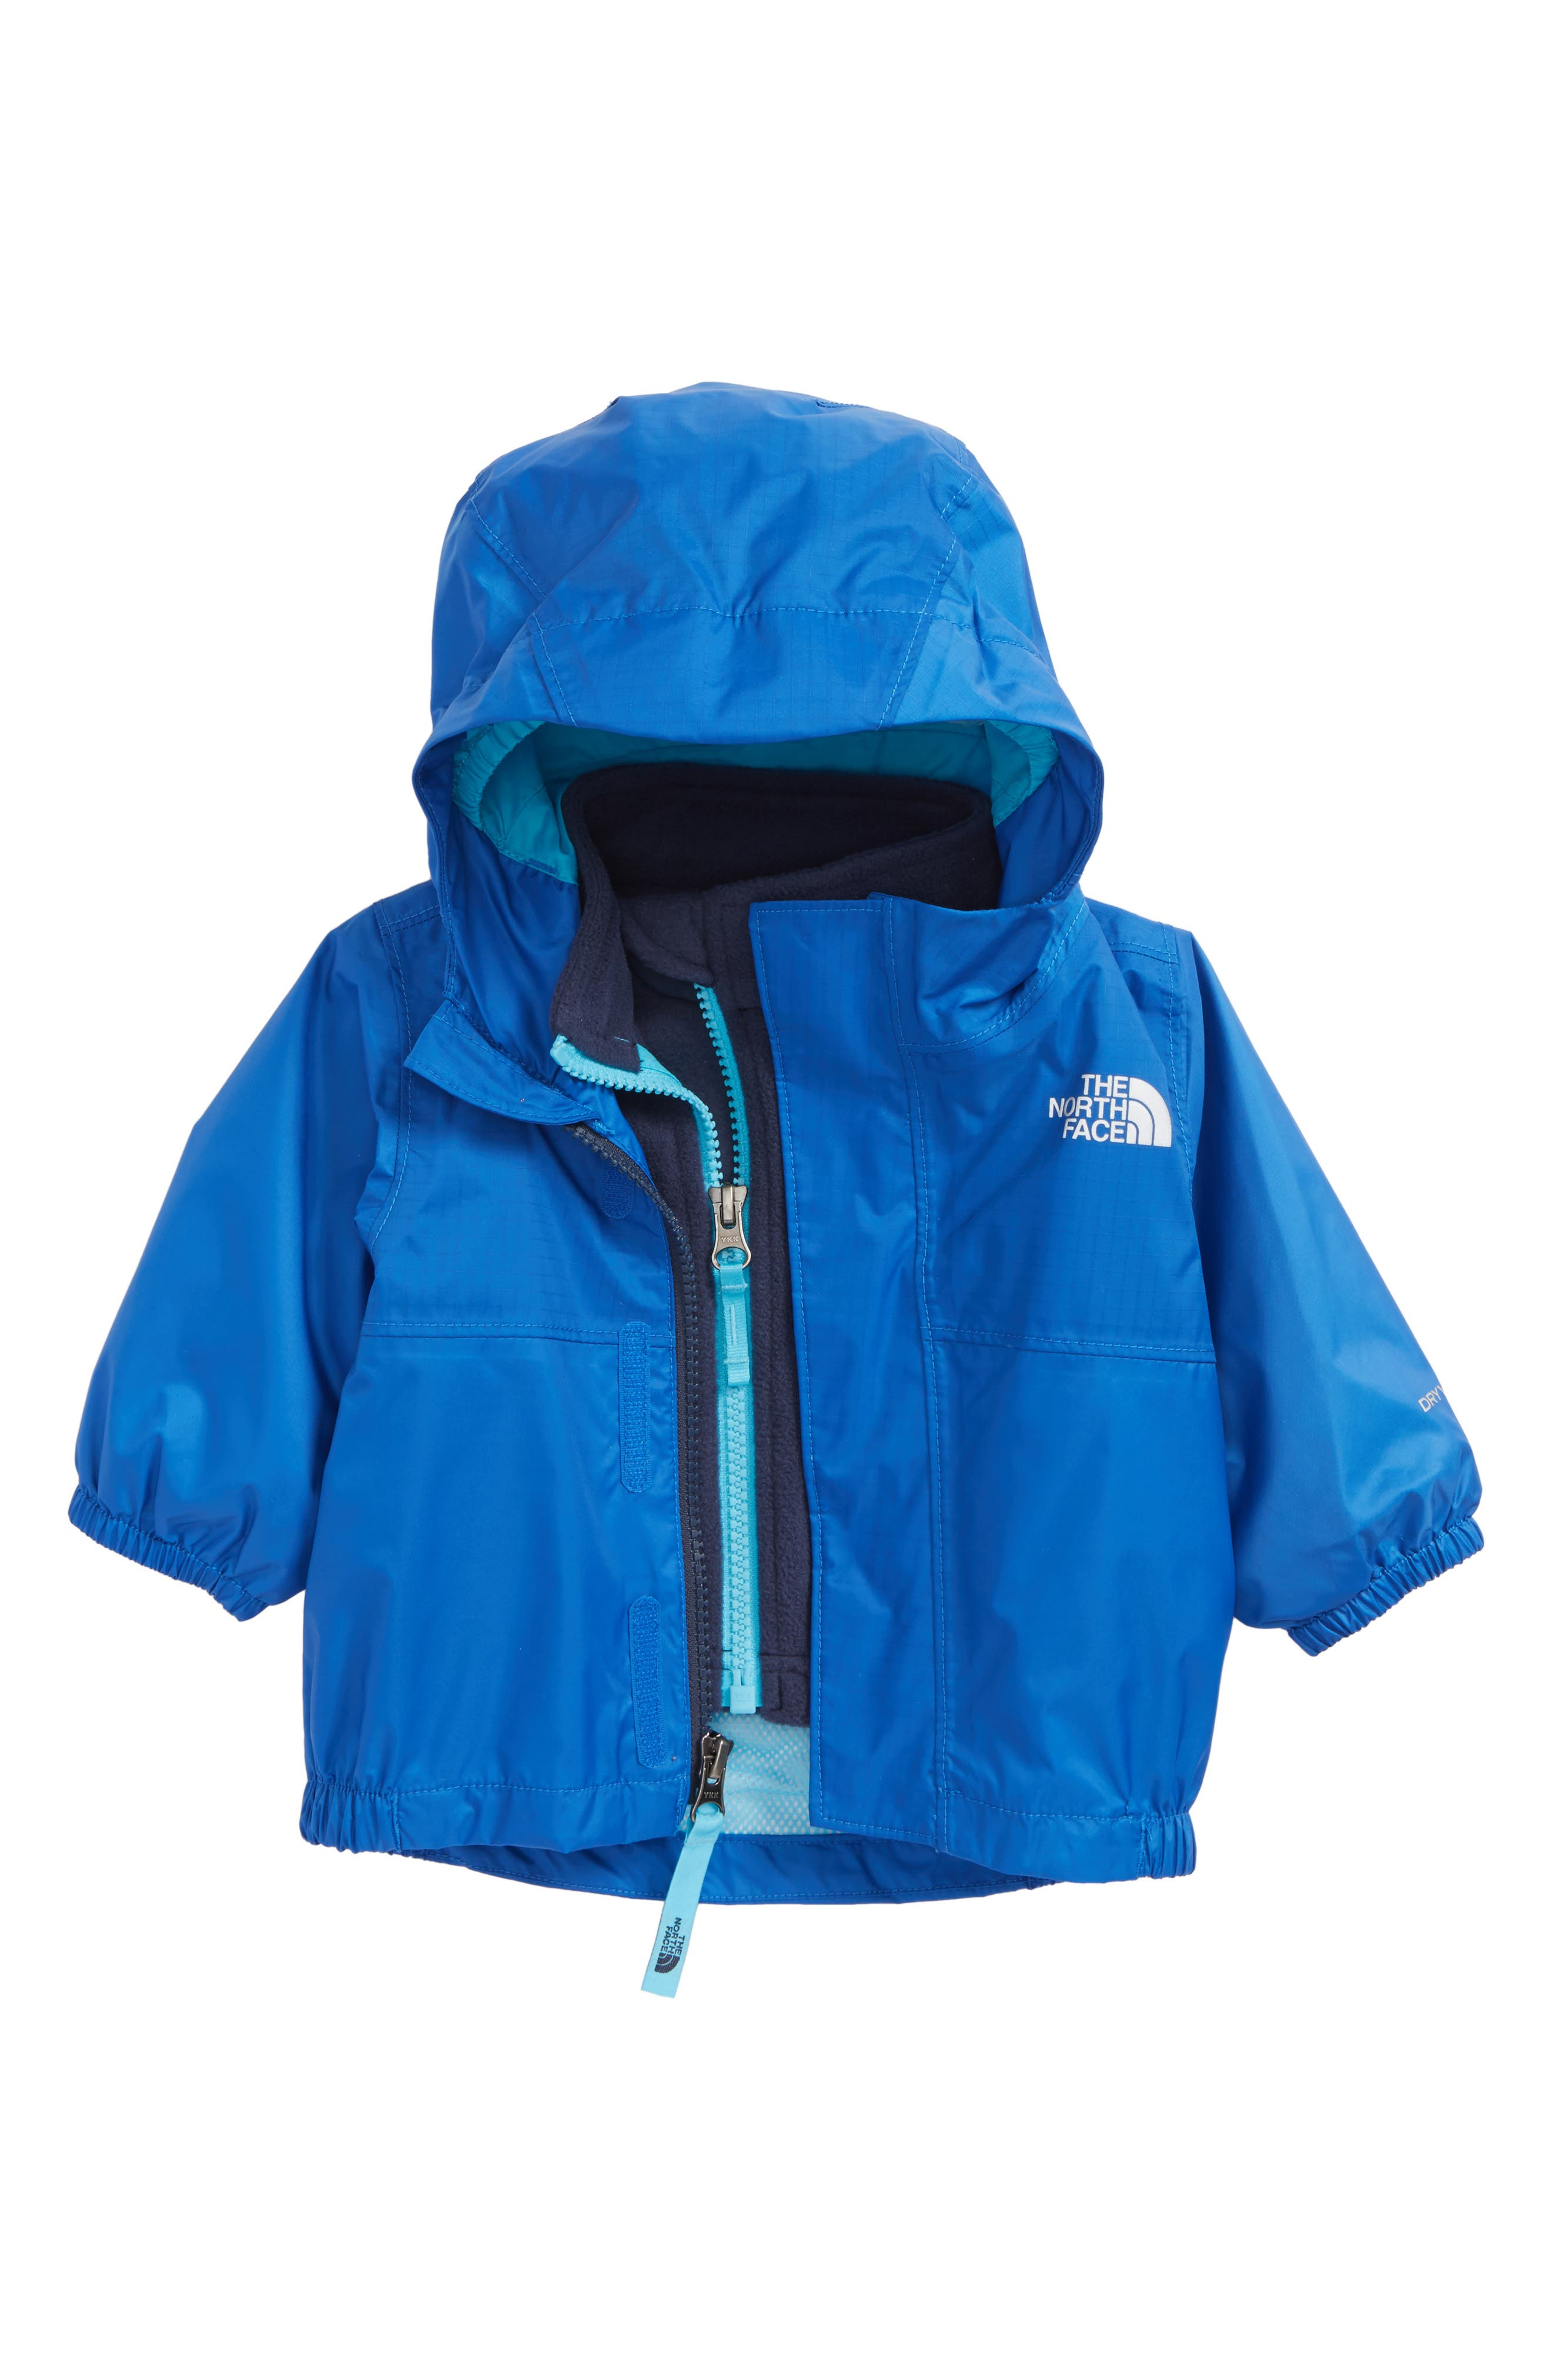 Stormy Rain TriClimate<sup>®</sup> Waterproof & Windproof 3-in-1 Jacket,                         Main,                         color,